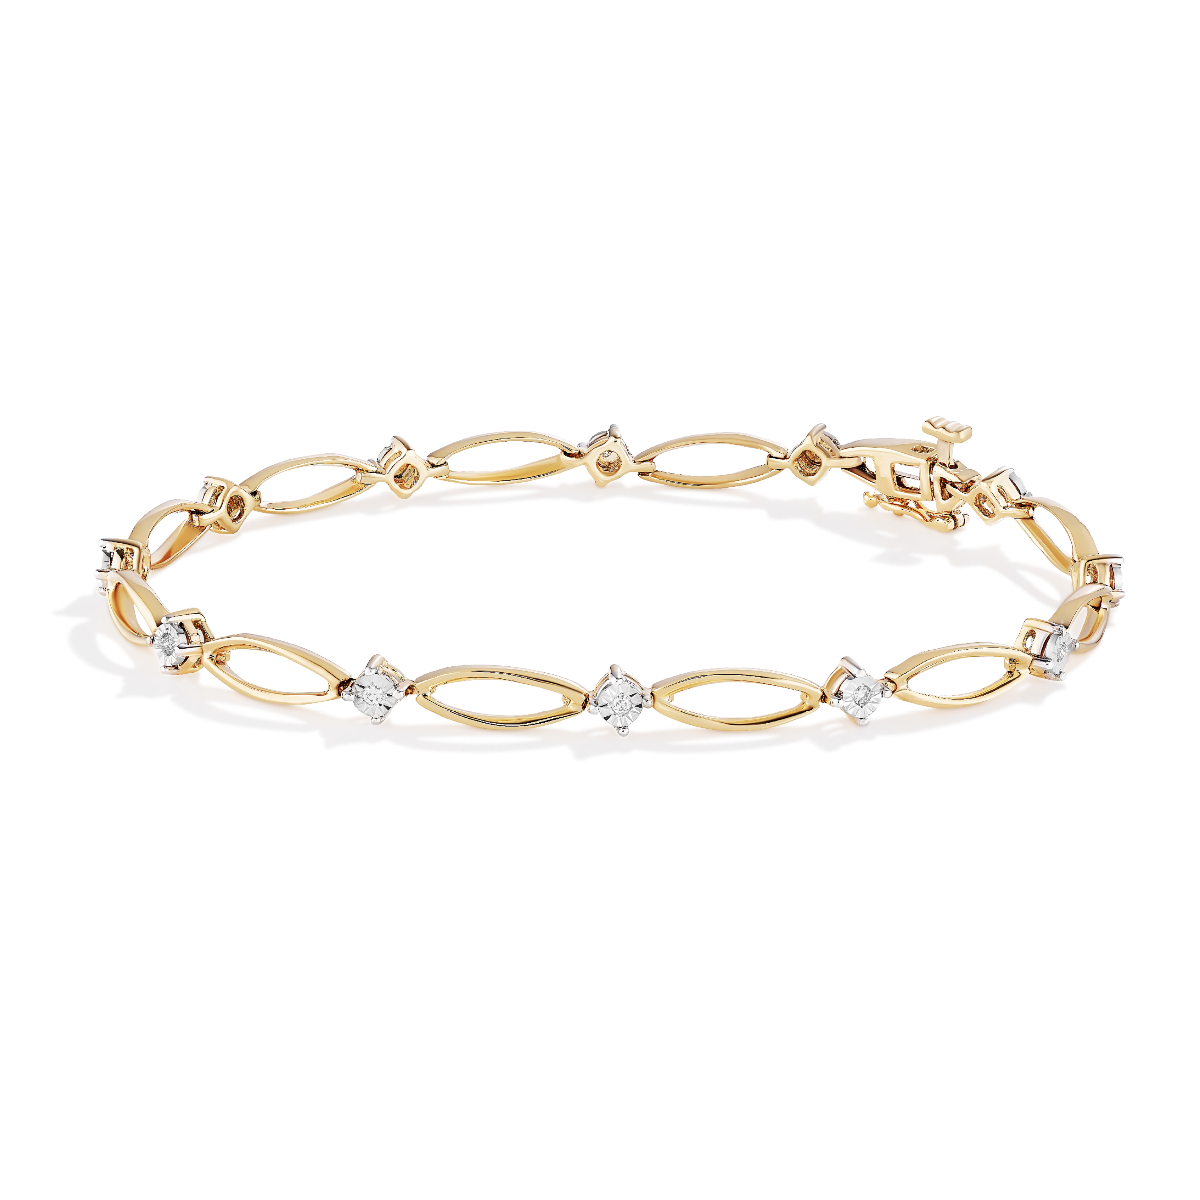 Marquise Shaped Bracelet .12ctw in 10k Yellow Gold